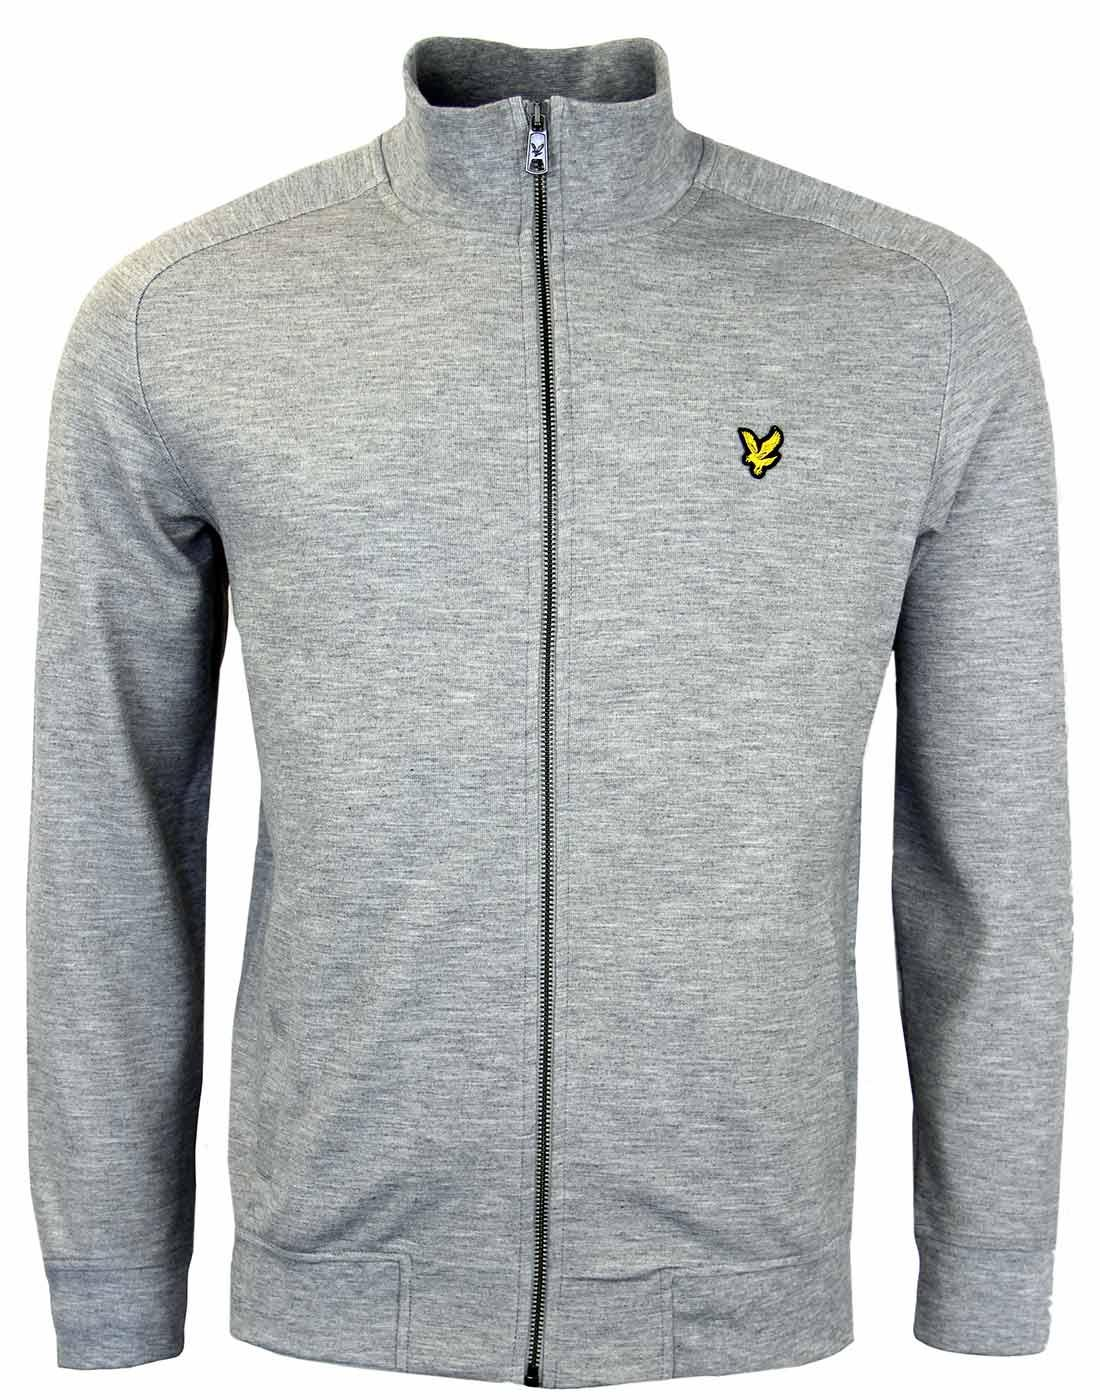 lyle scott retro indie funnel neck track jacket in grey. Black Bedroom Furniture Sets. Home Design Ideas